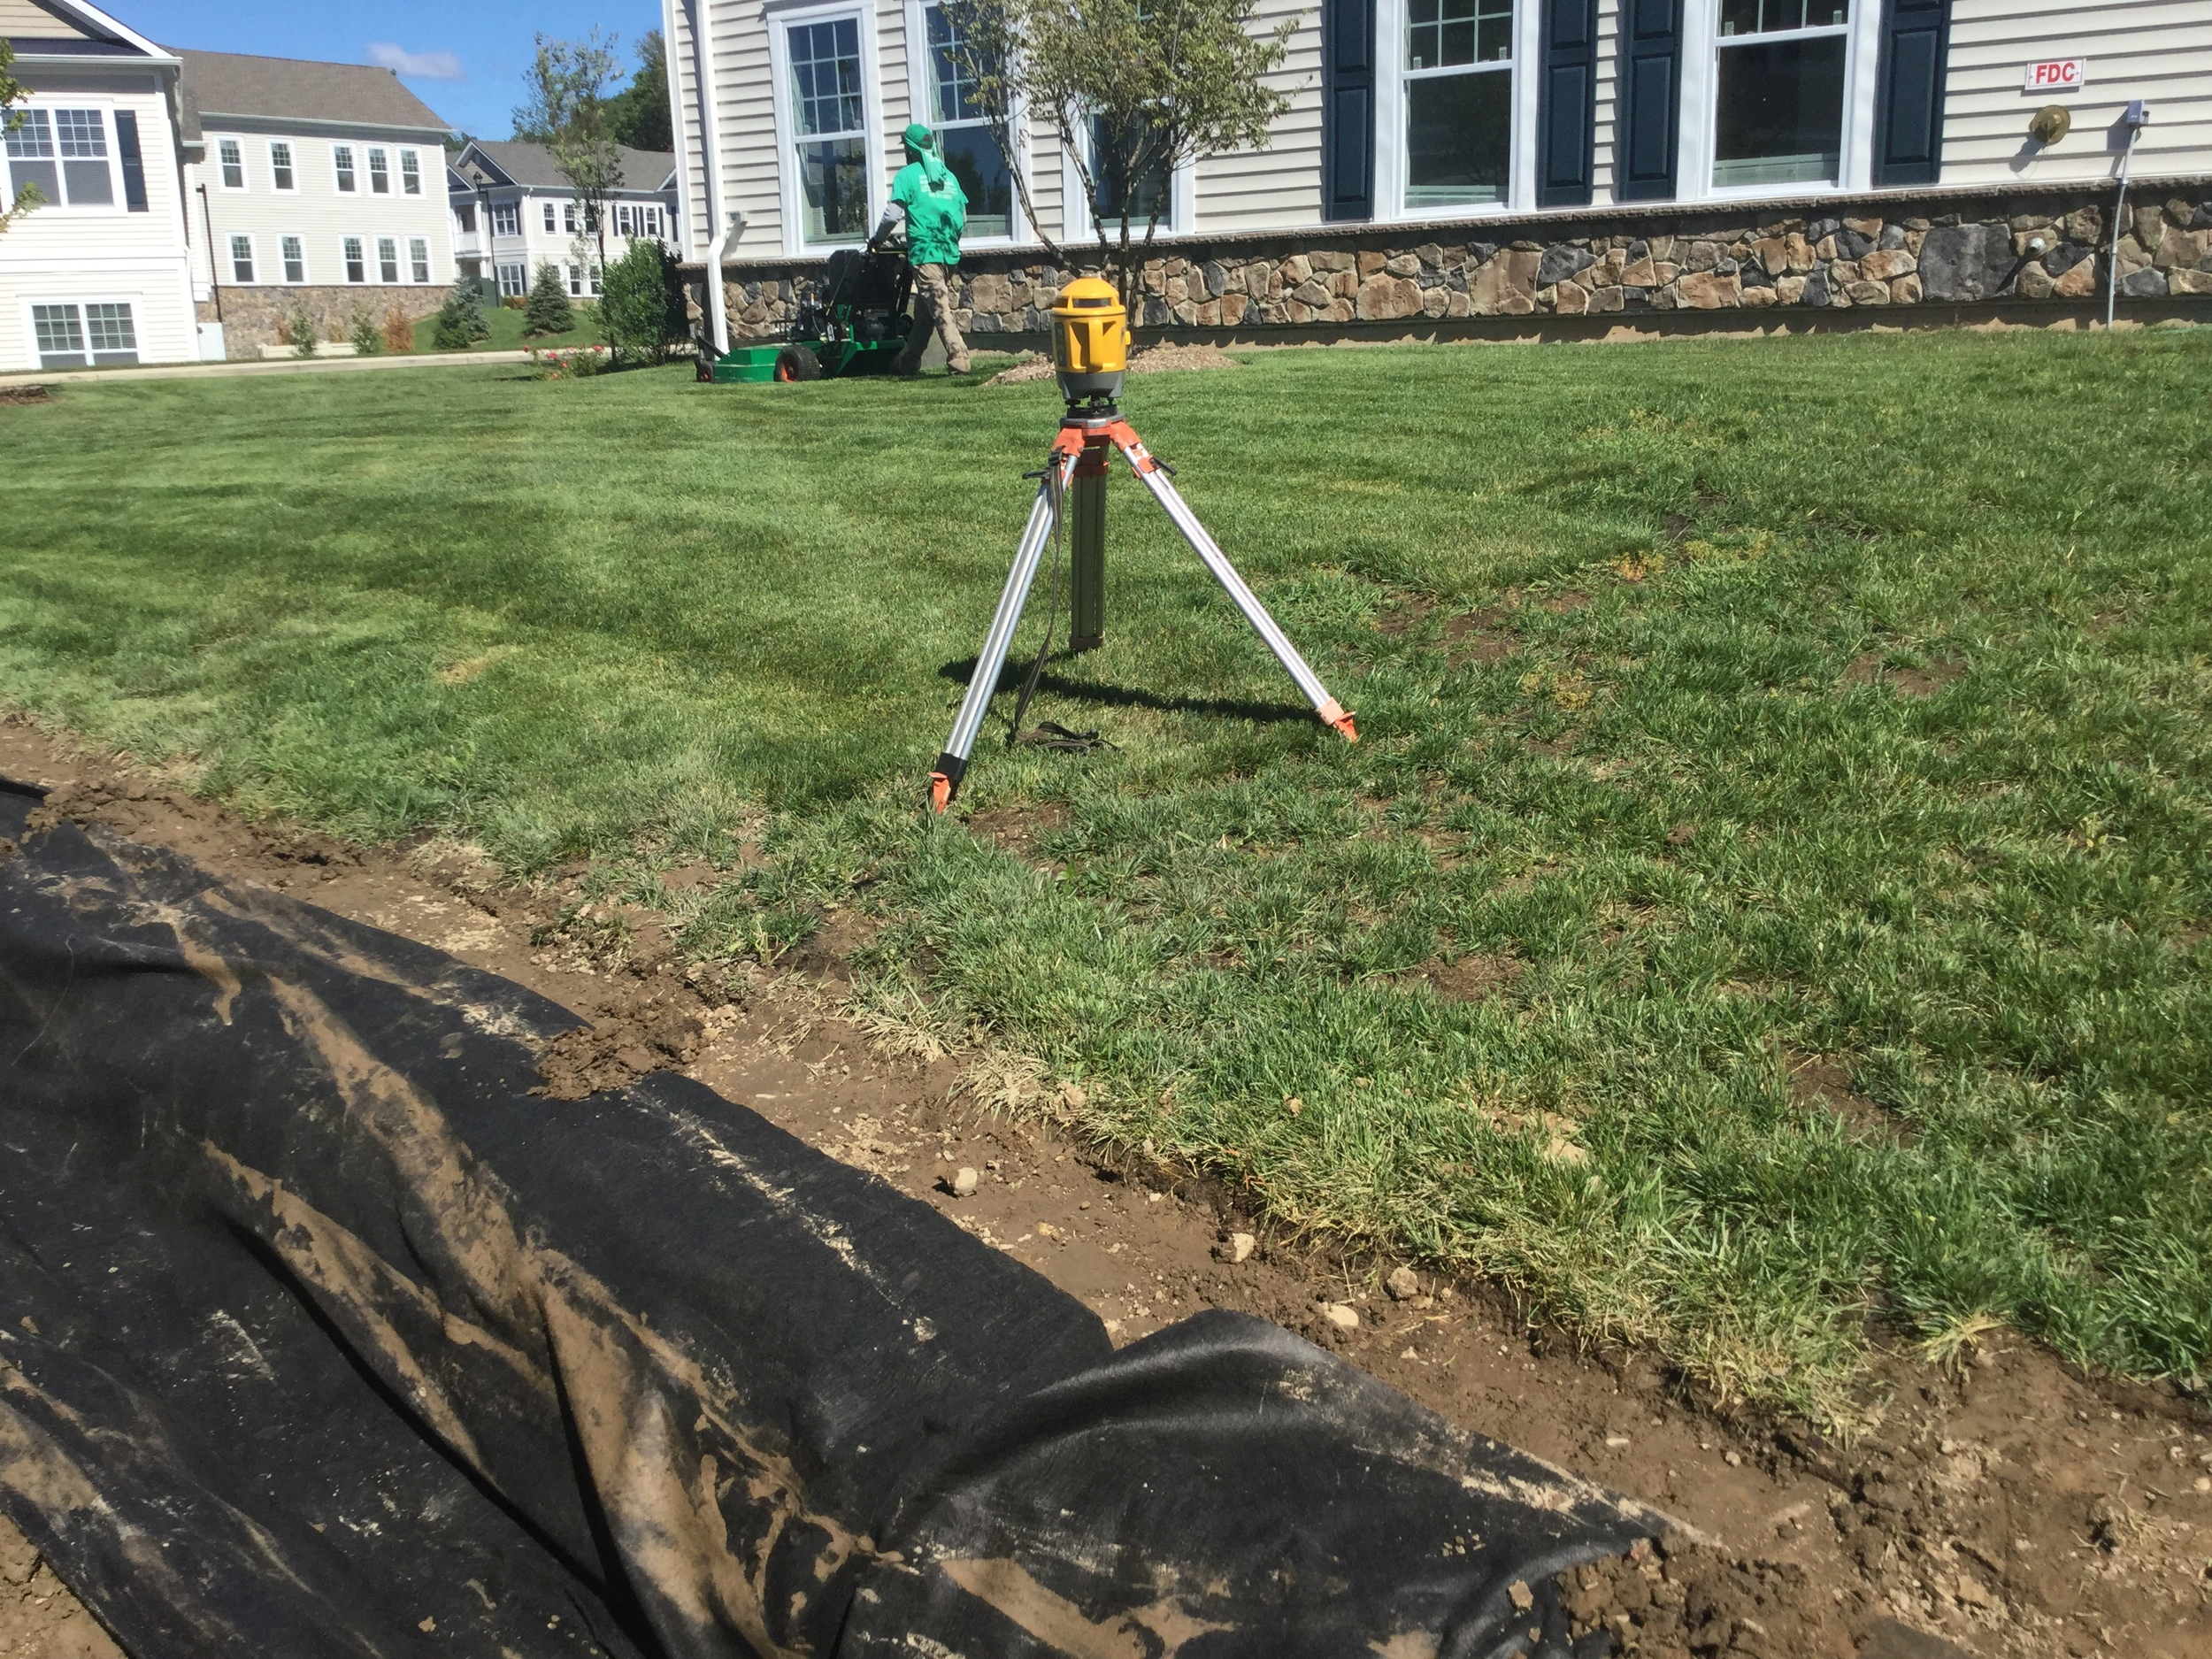 Survey equipment is used in the construction process to ensure quality and the highest level of craftsmanship. Grasskeepers Landscaping Inc. One of our landscape maintenance professionals is shown keeping up with the grounds in the background.